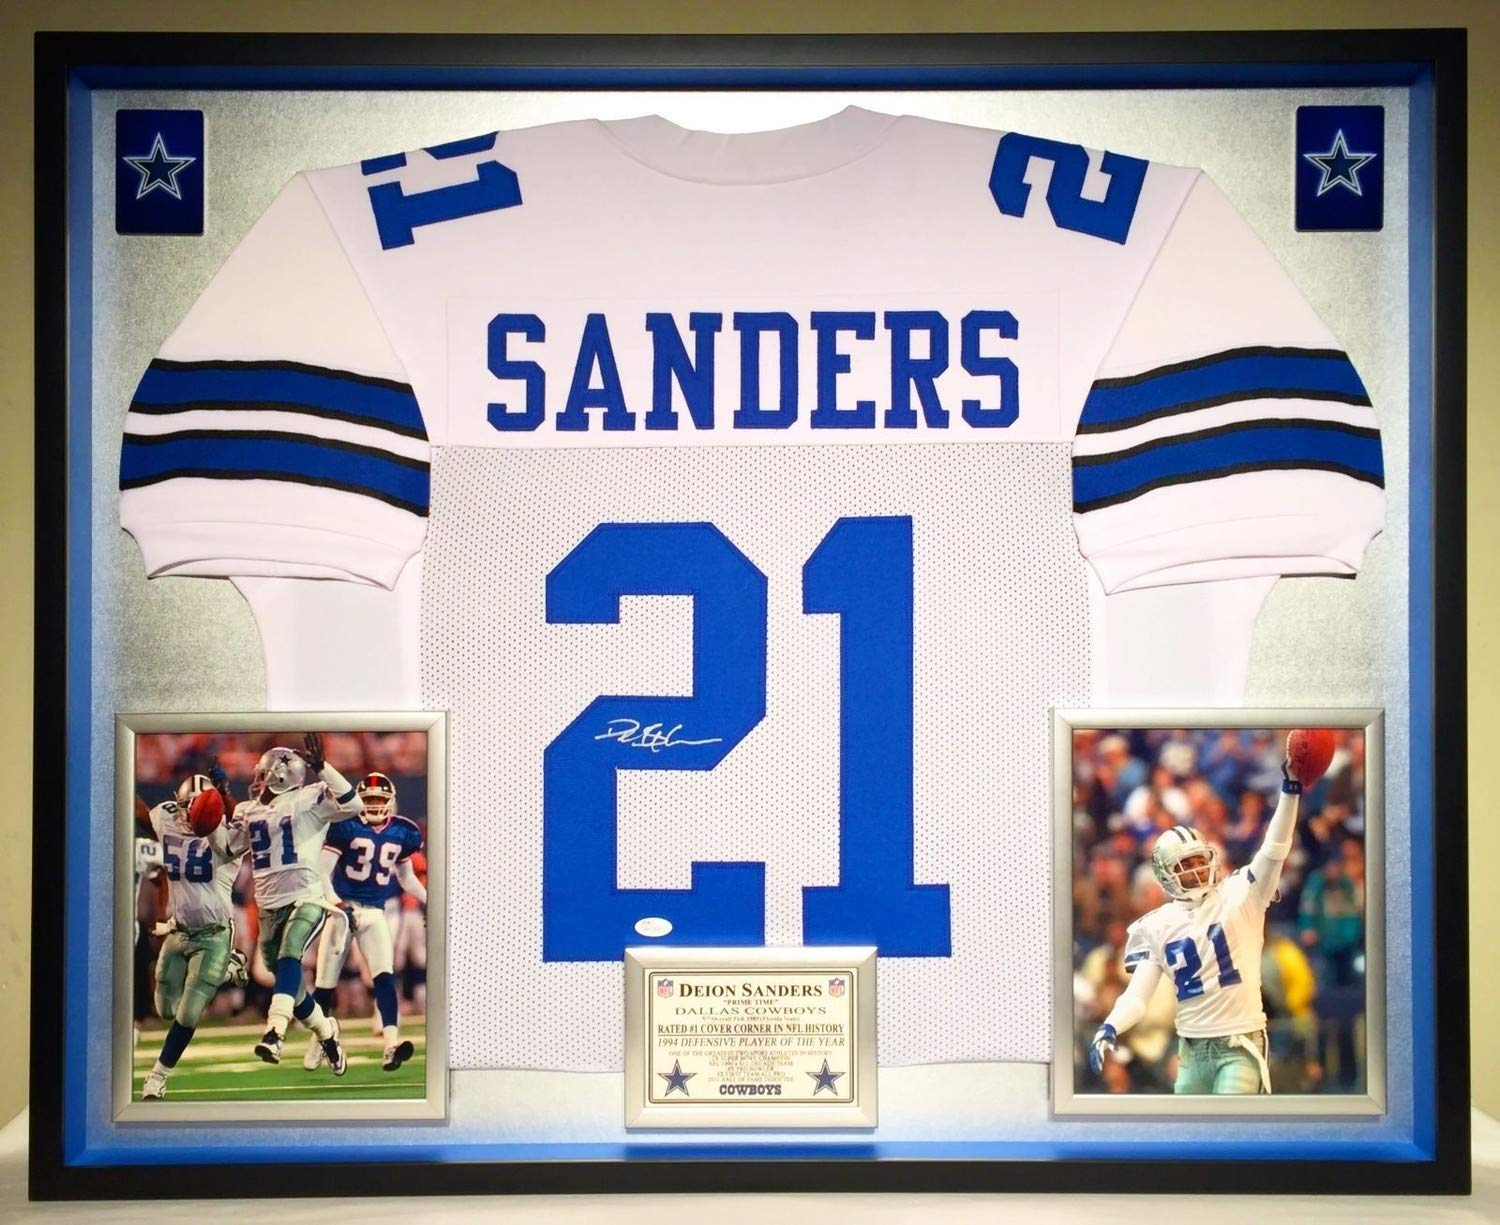 9ce09d8a882 Deluxe Framed Deion Sanders Autographed Signed Dallas Cowboys Jersey  Memorabilia - JSA Authentic at Amazon's Sports Collectibles Store